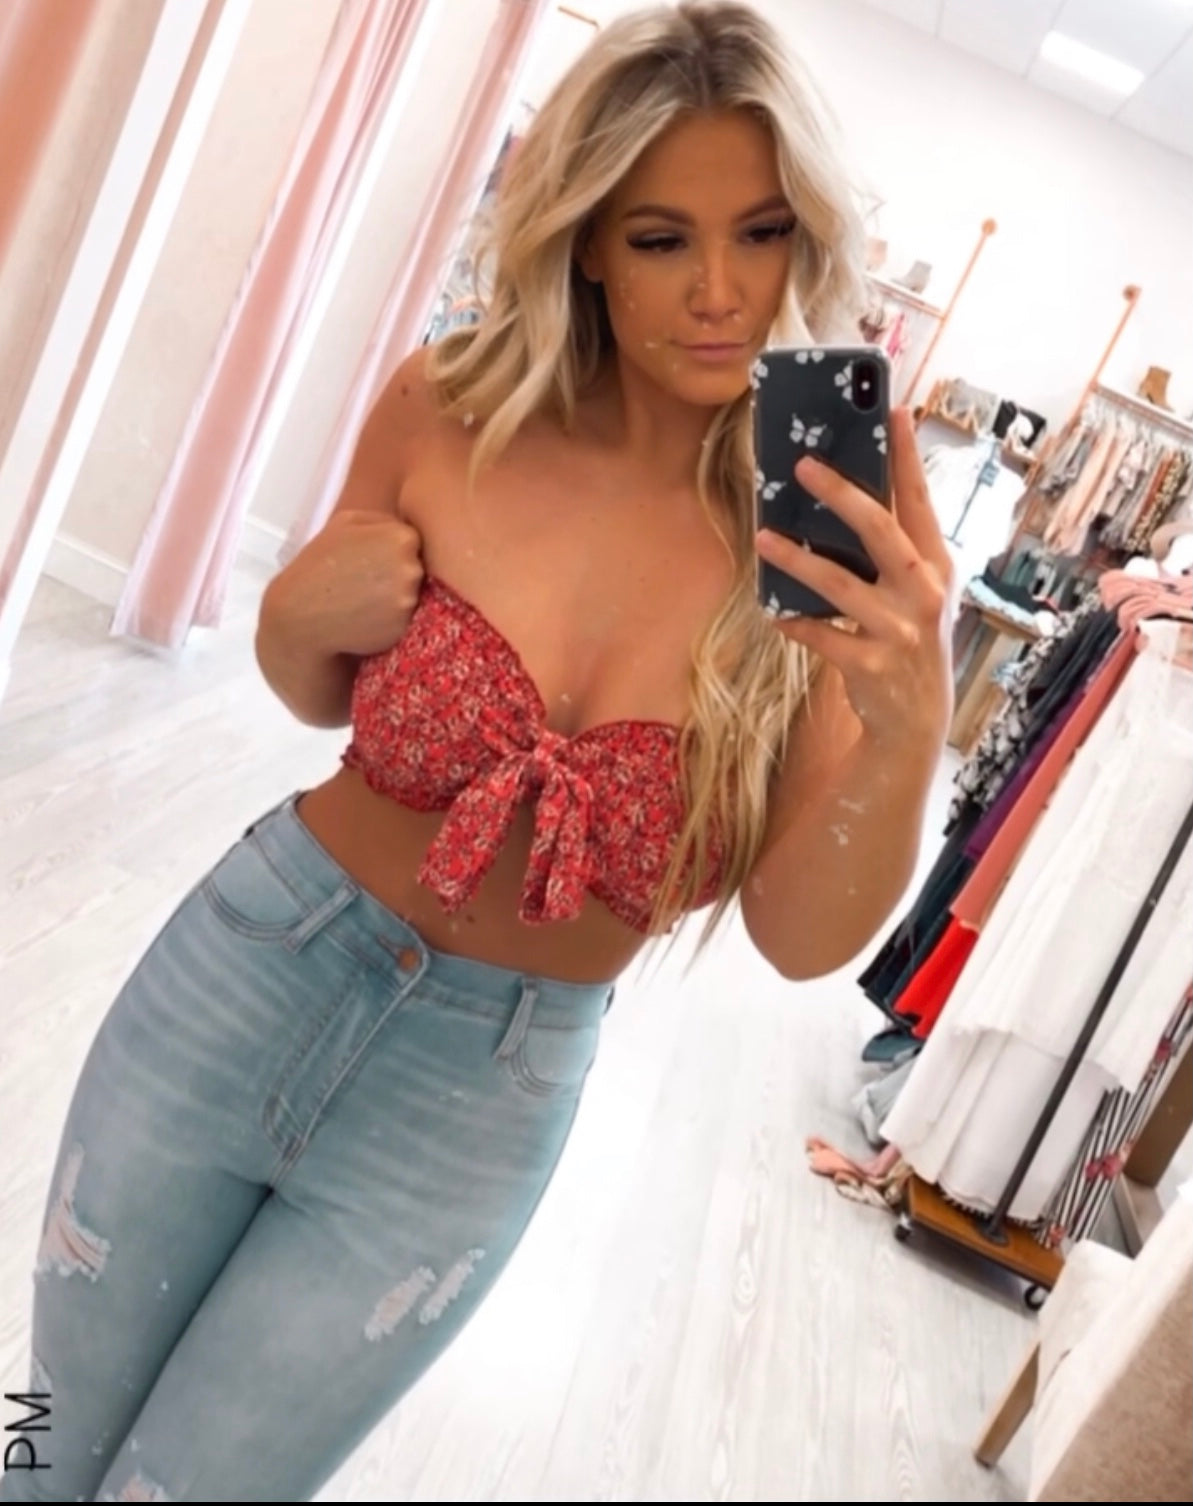 Brielle Tie Tube Top